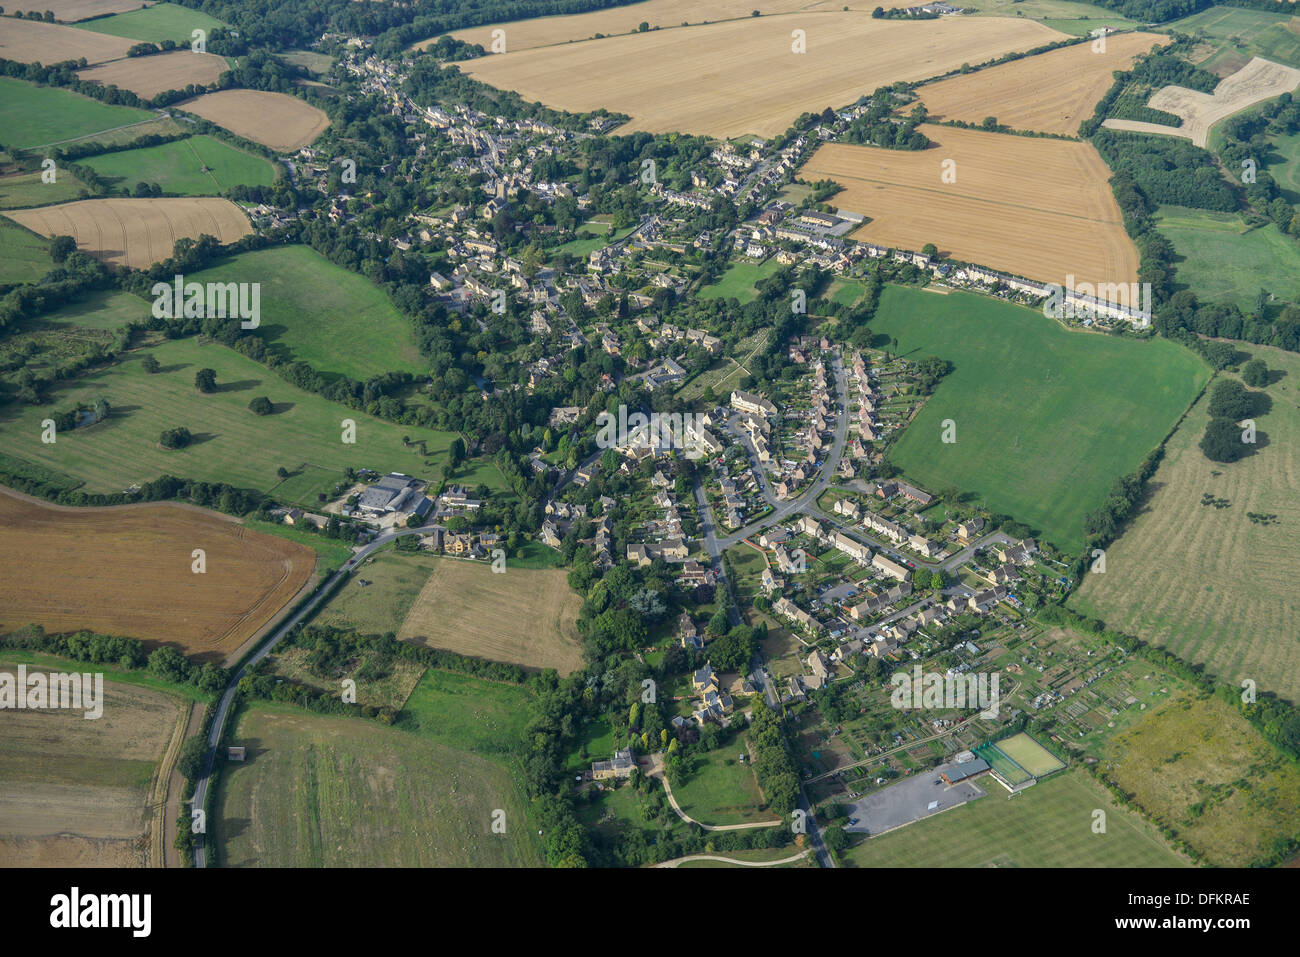 Aerial photograph of Blockley - Stock Image